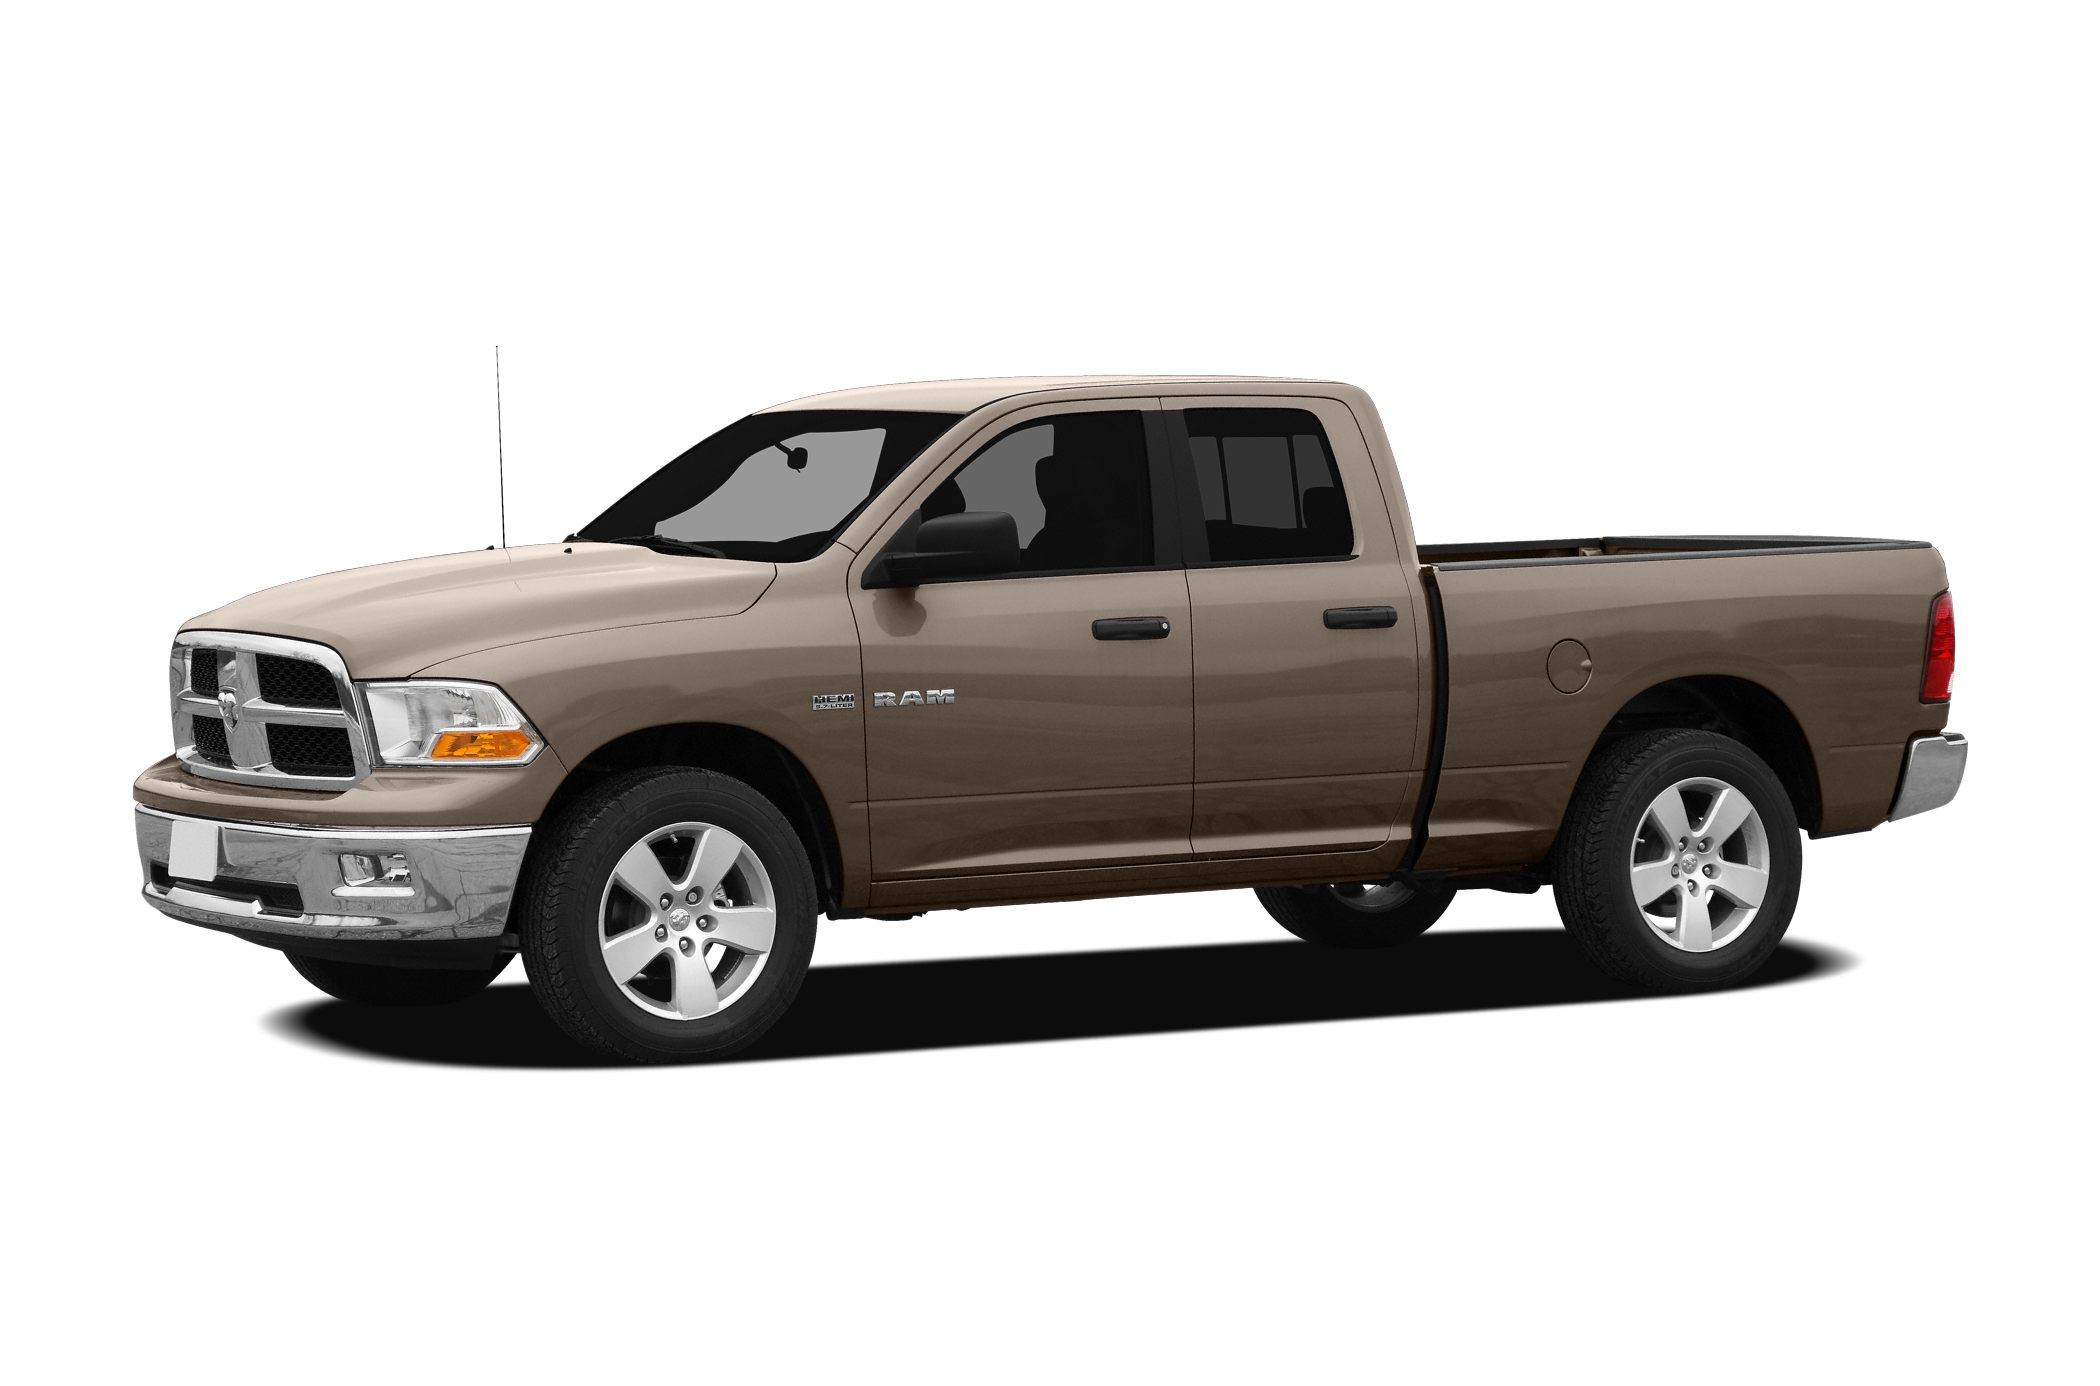 2010 Dodge Ram 1500 Laramie Crew Cab Pickup for sale in Mineola for $30,999 with 20,125 miles.